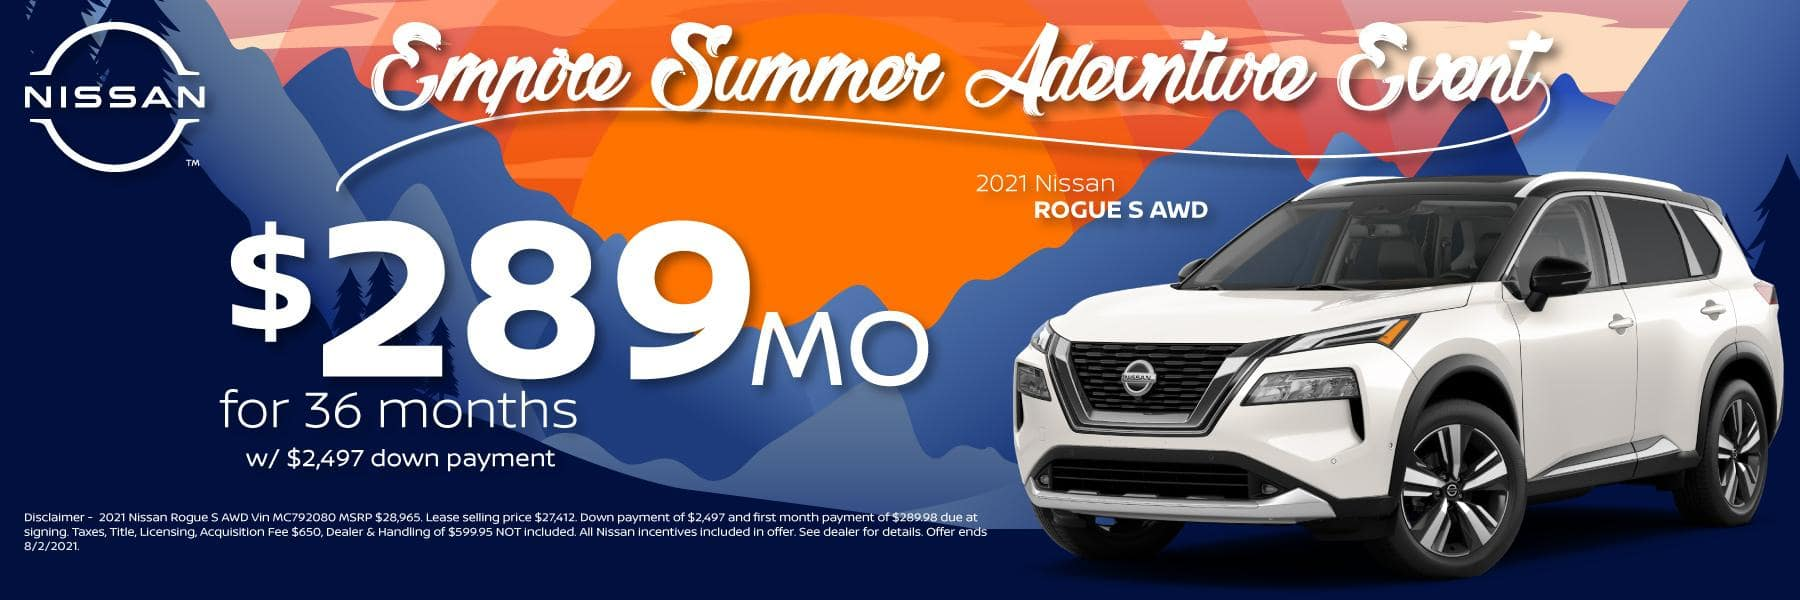 Best New 2021 Nissan Rogue Lease and Purchase Specials in Denver, CO